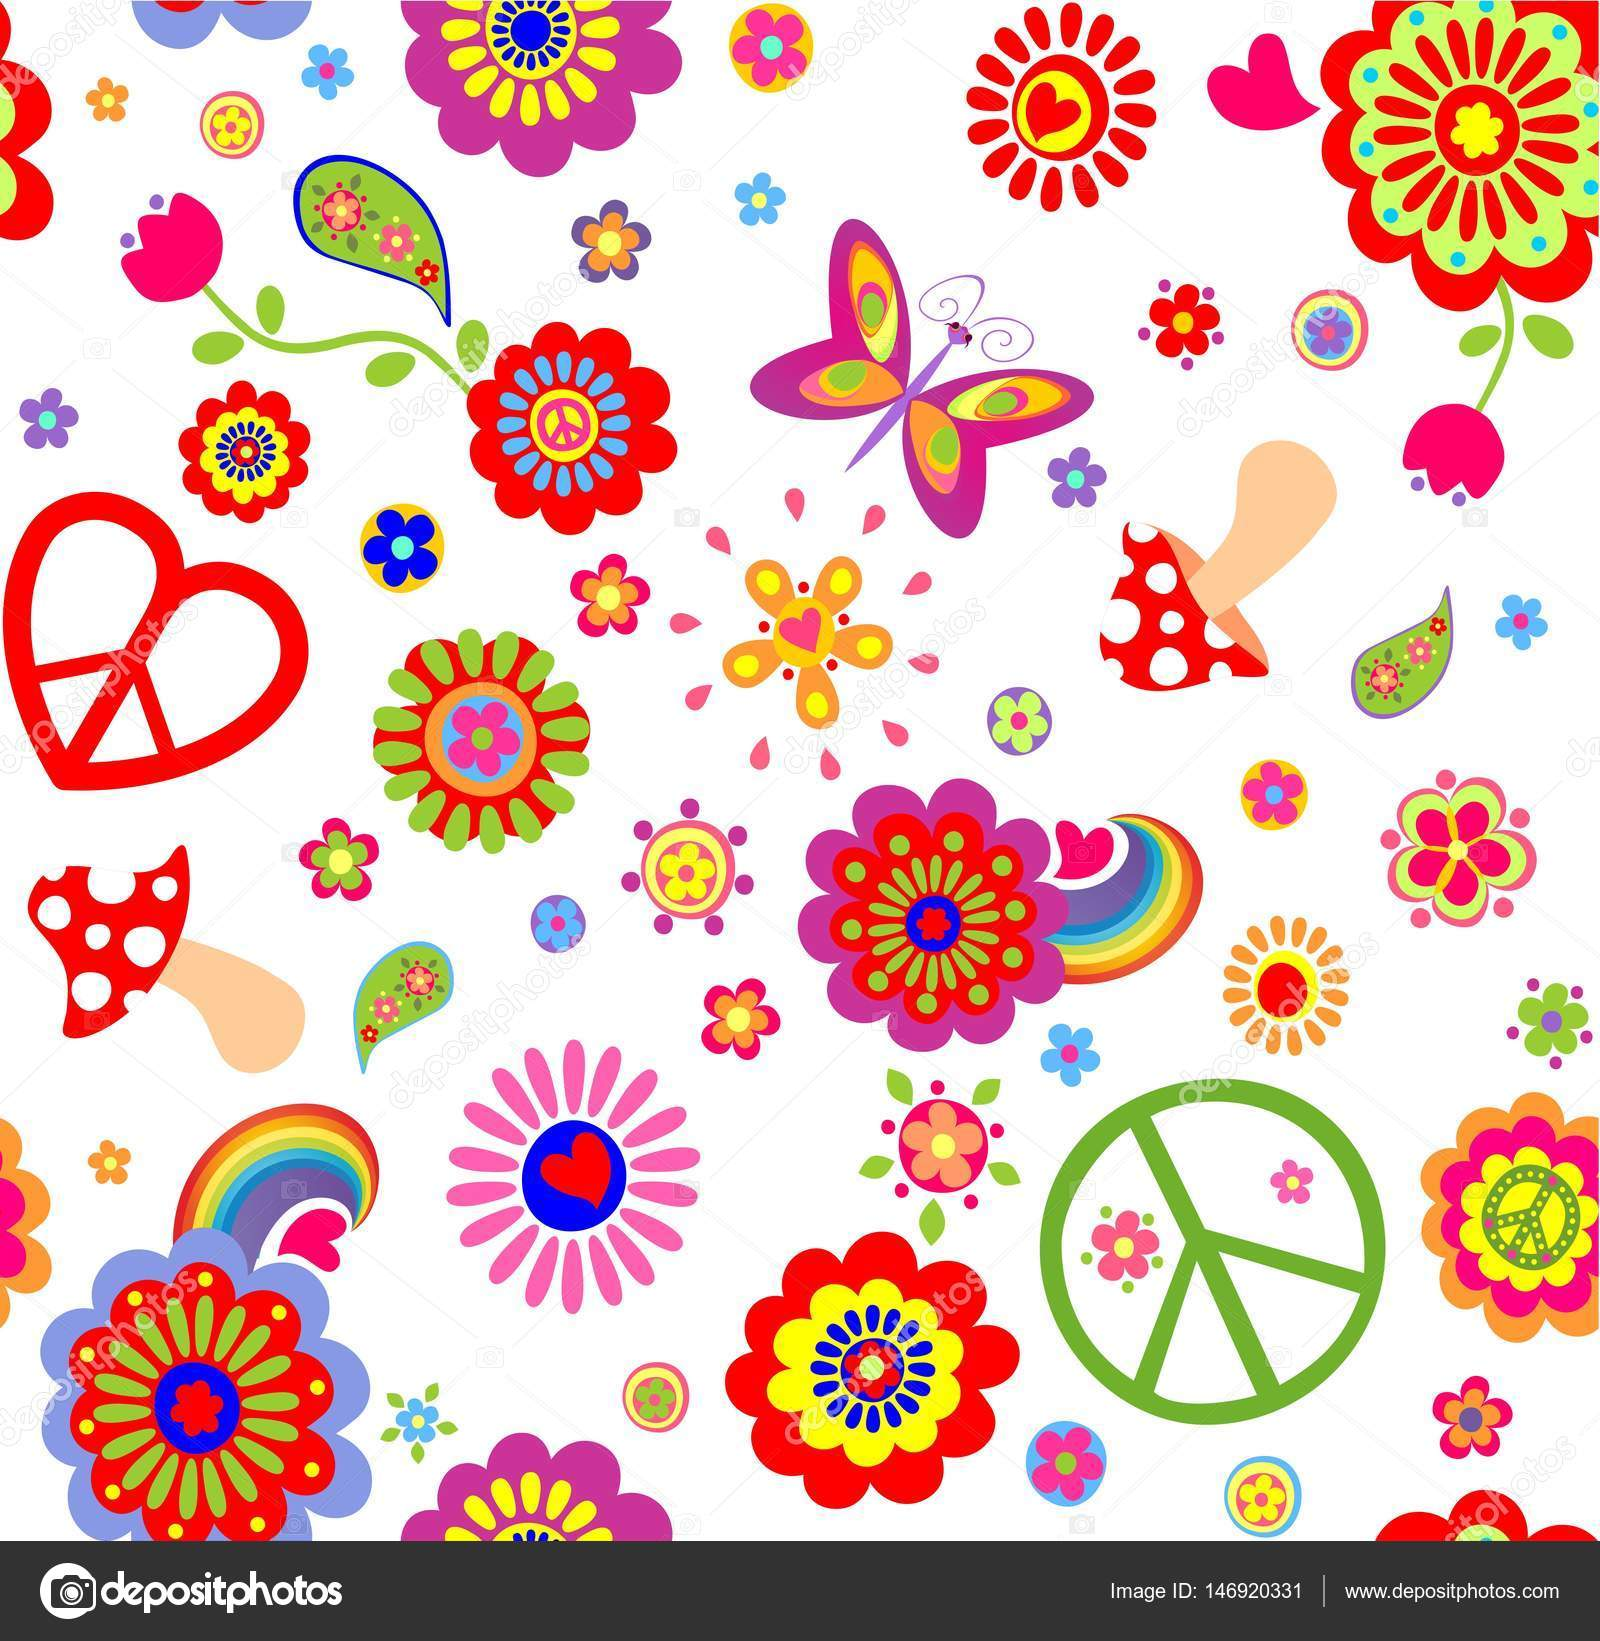 Hippie childish funny wallpaper with abstract flowers for Papel pintado infantil barato